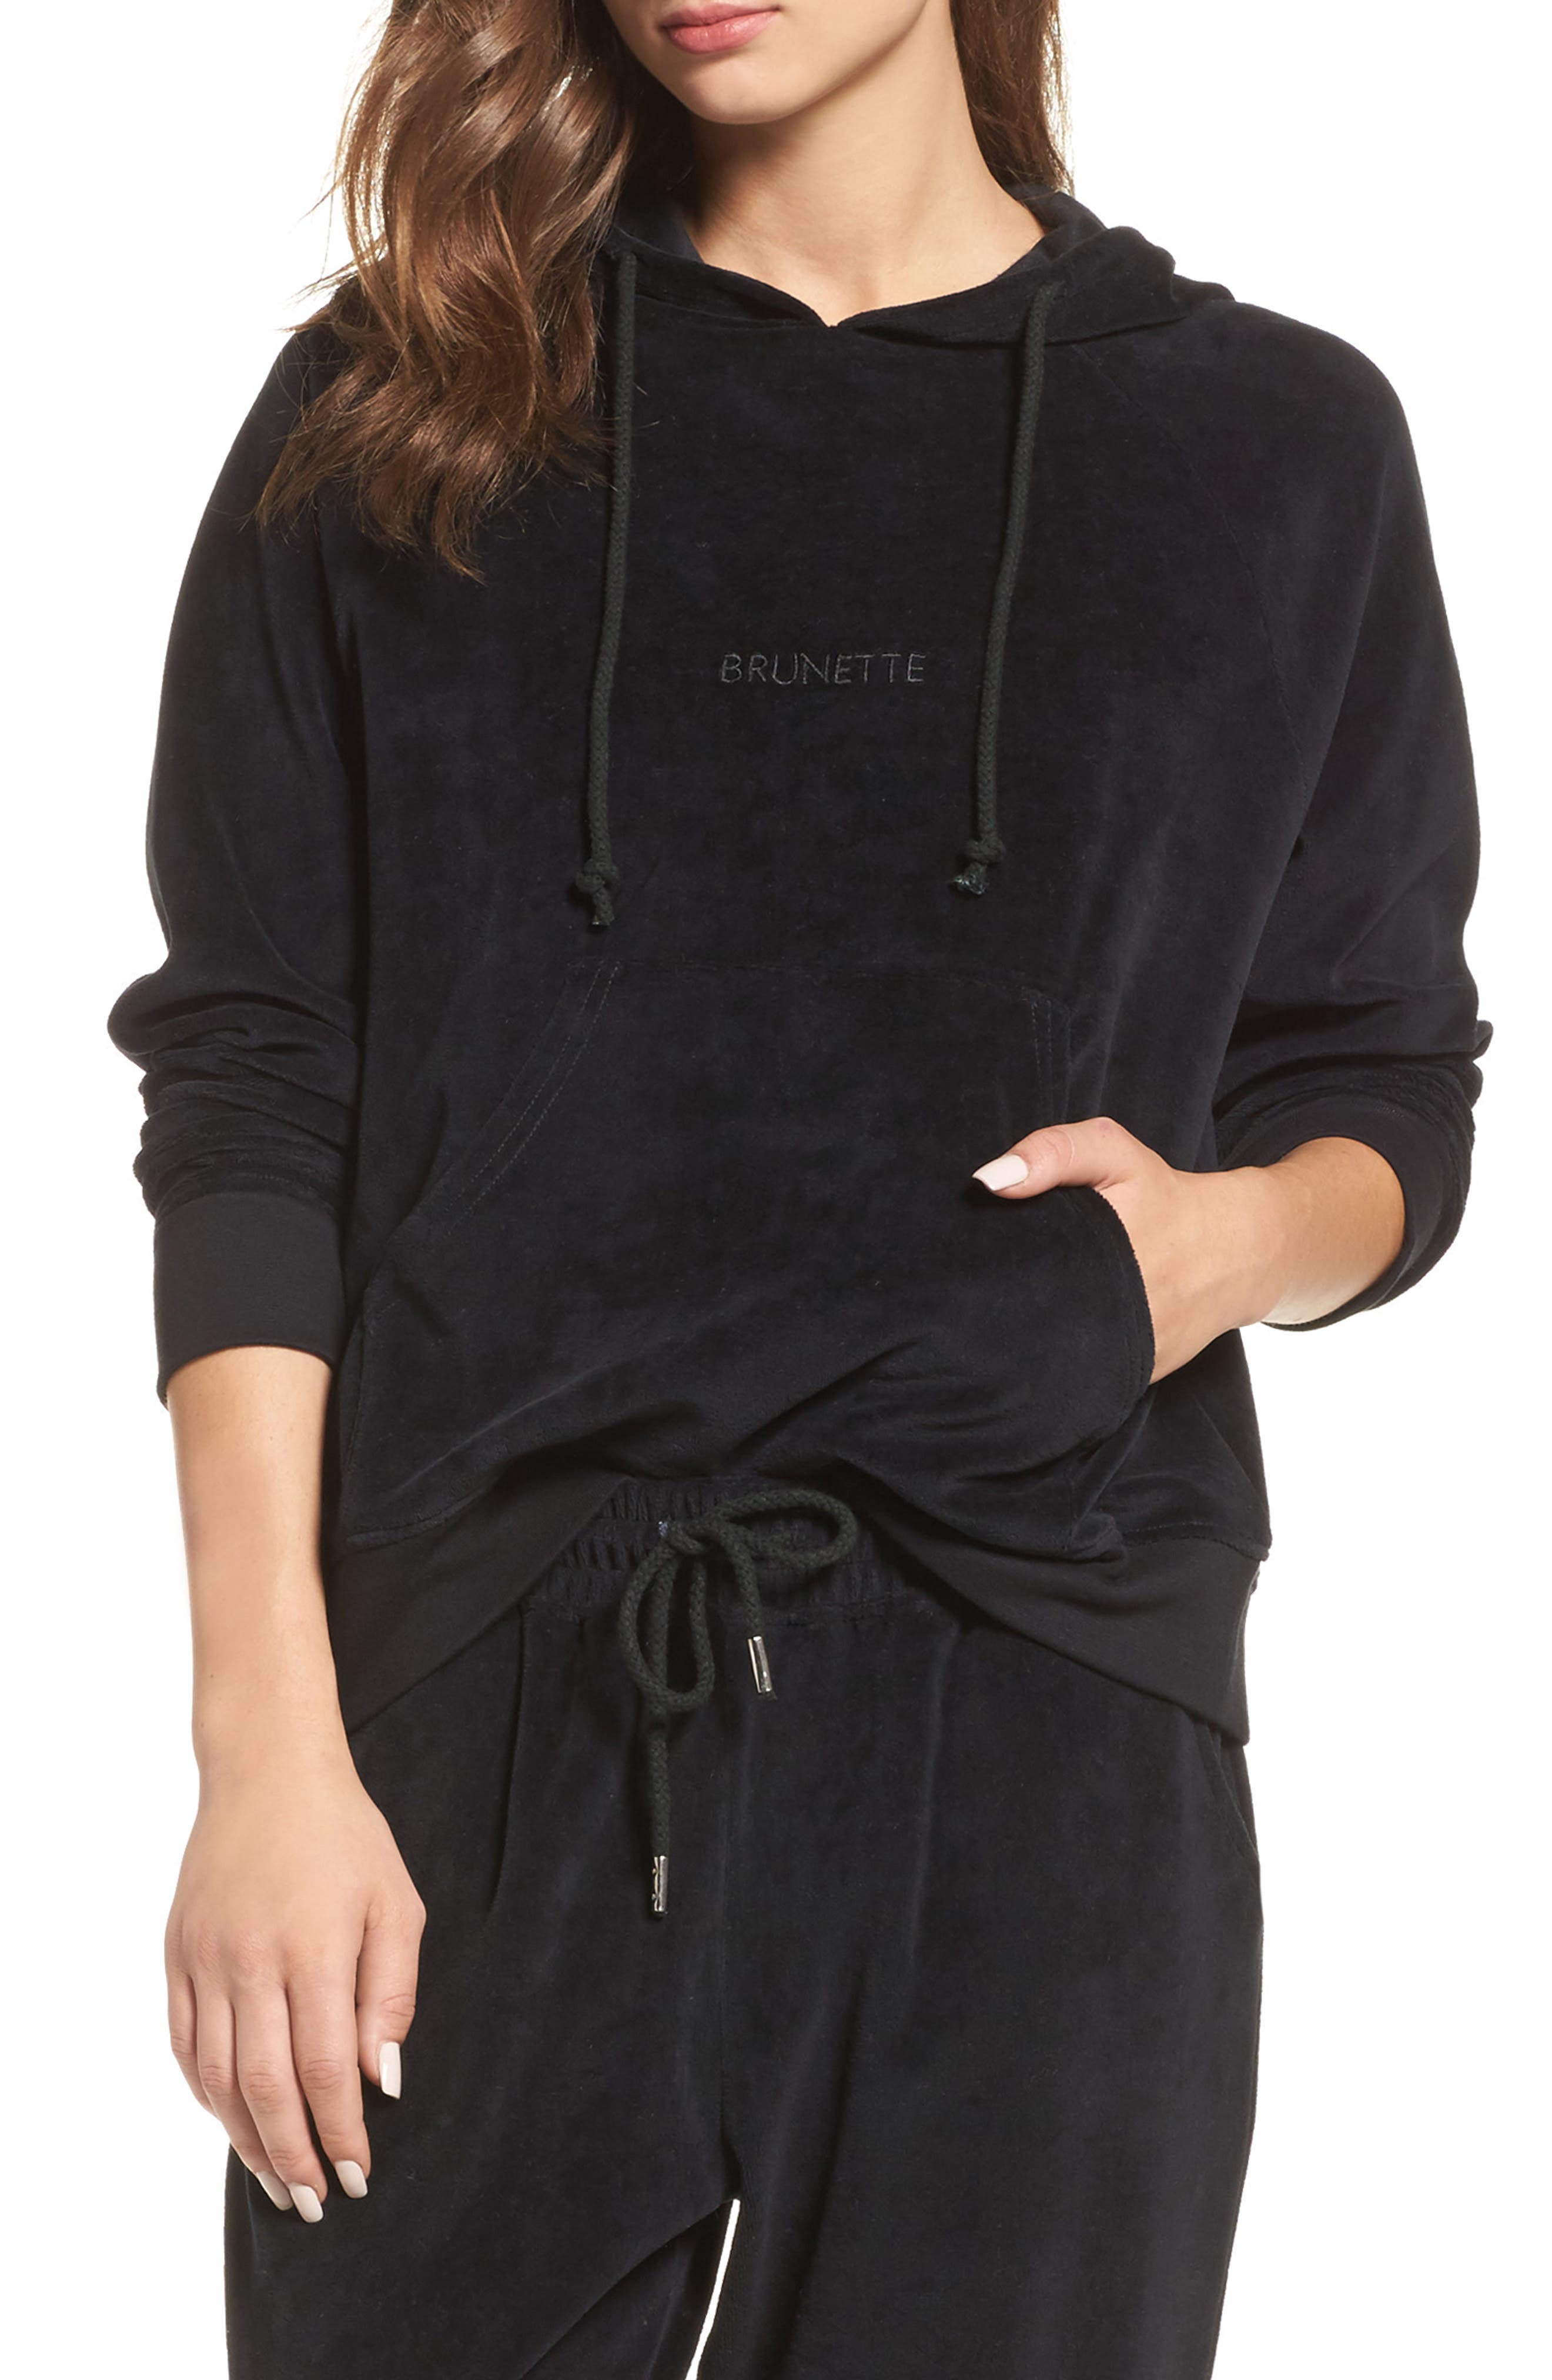 Brunette Embroidered Velour Hoodie,                         Main,                         color, Black